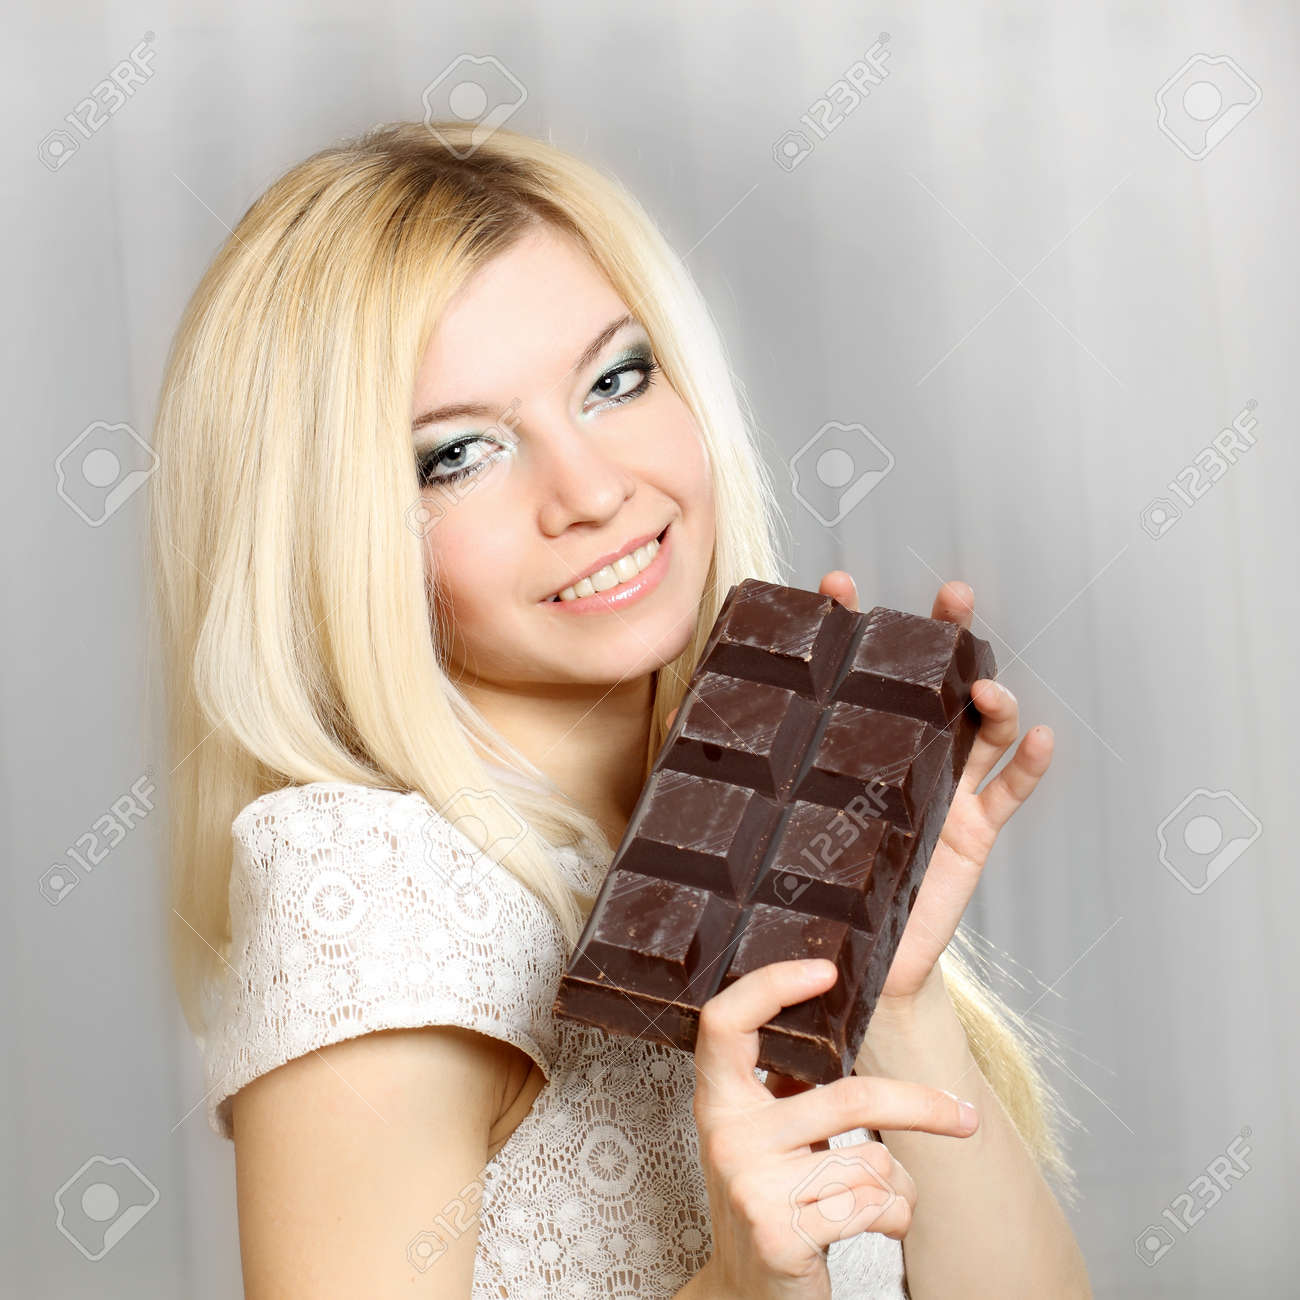 Nice Natural Cute Blonde Girl Eating A Large Bar Of Chocolate ...